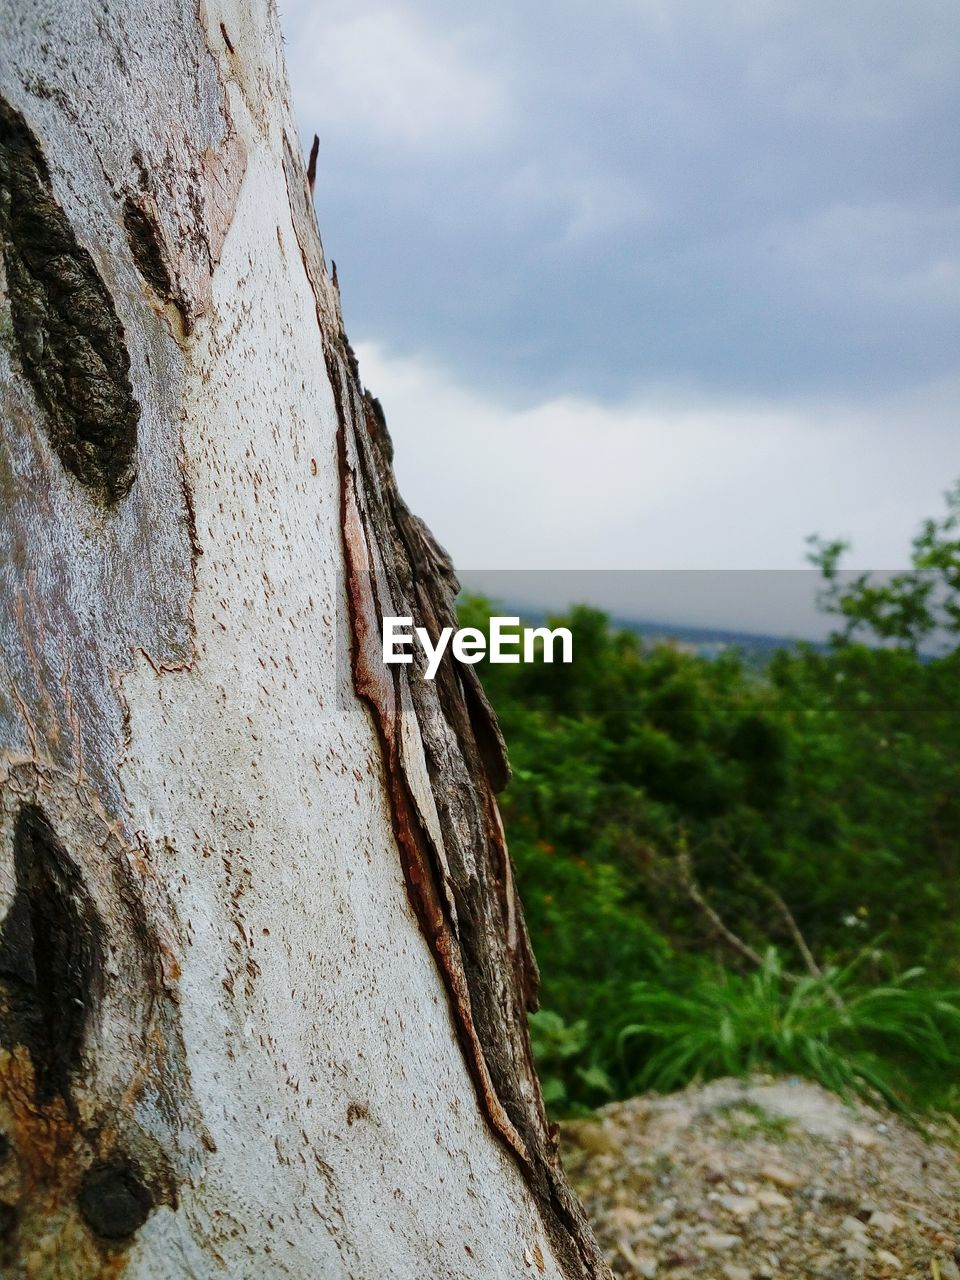 sky, day, focus on foreground, nature, close-up, outdoors, no people, tree, cloud - sky, textured, cliff, growth, beauty in nature